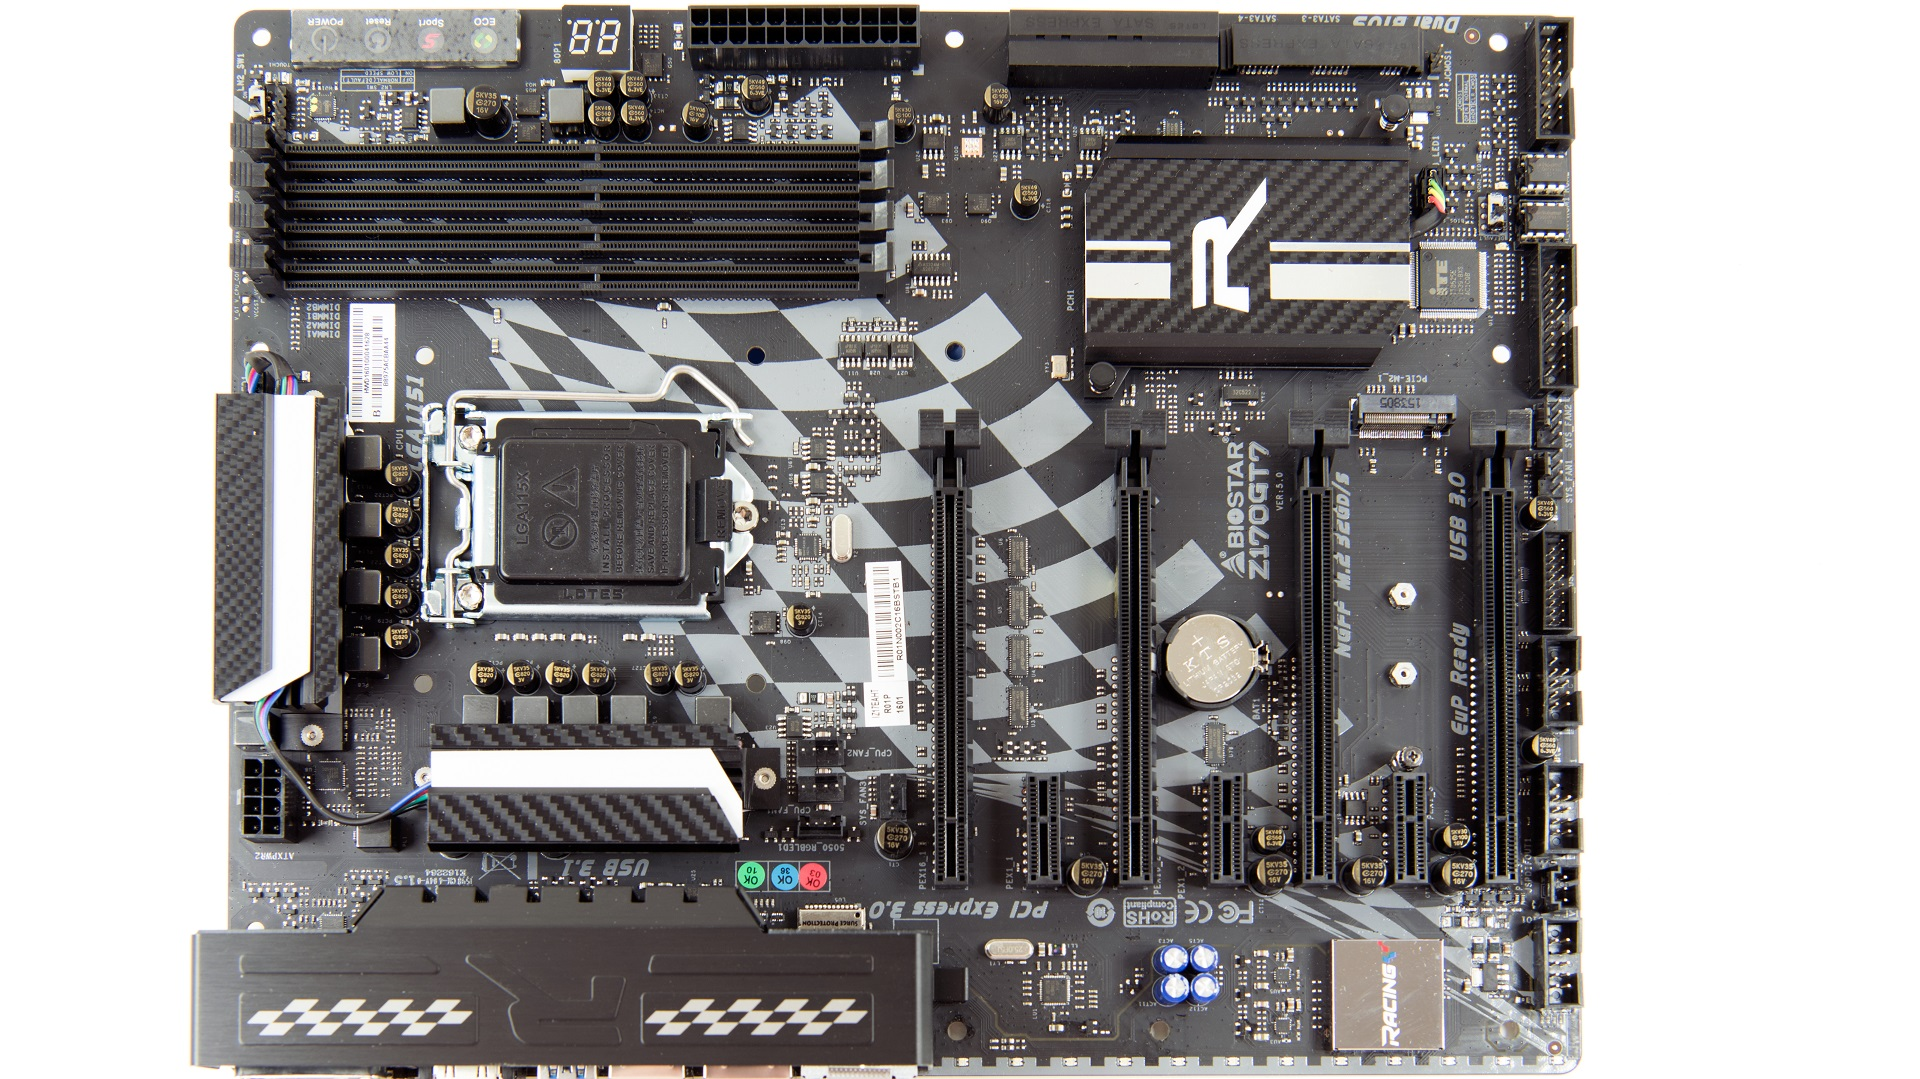 DRIVER FOR BIOSTAR Z170GT7 MOTHERBOARD